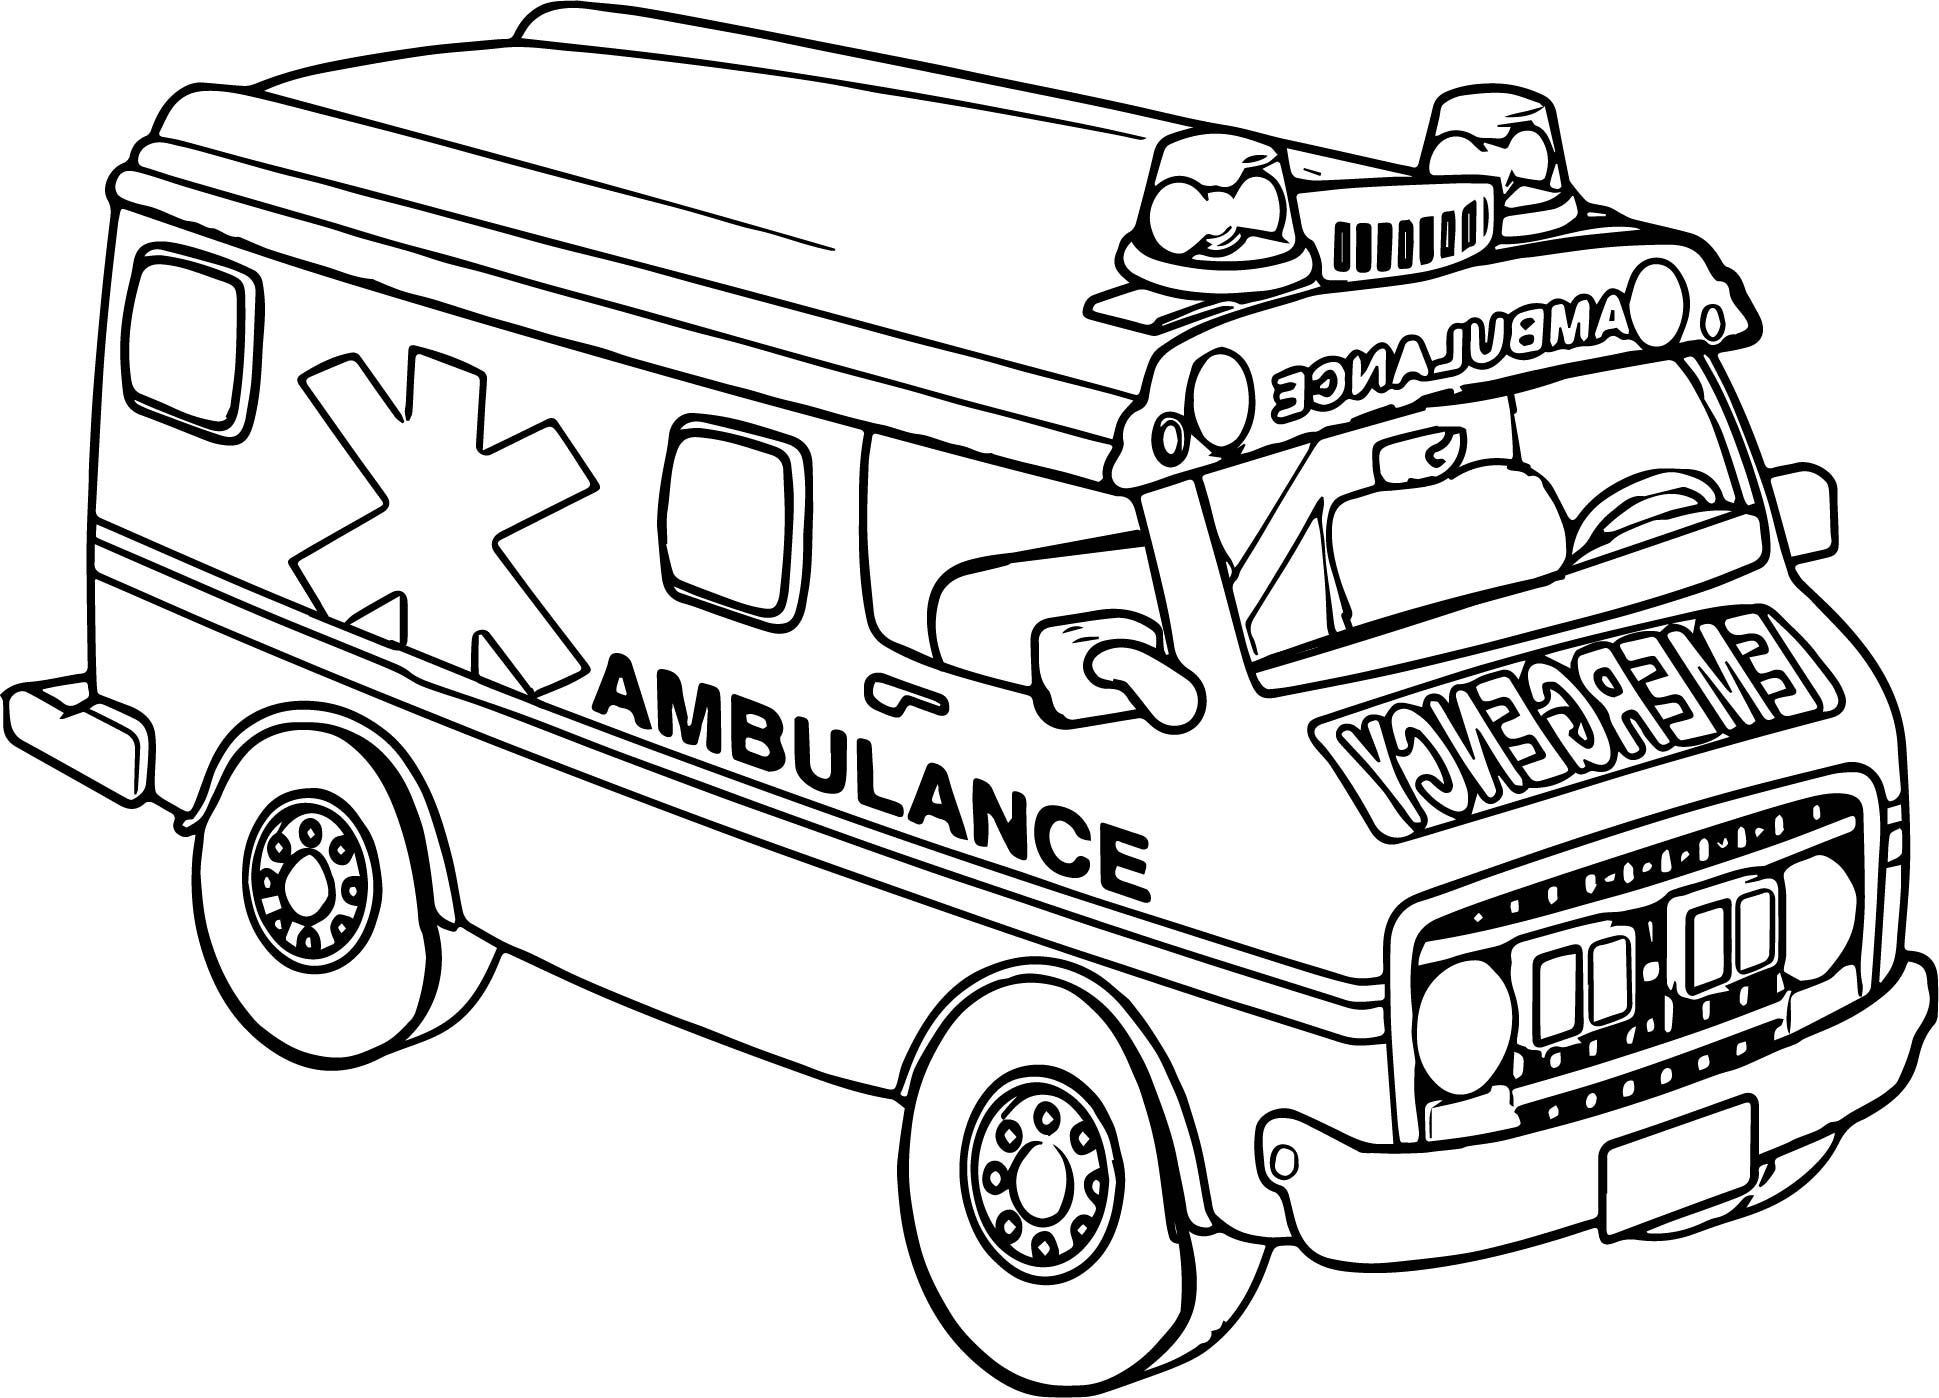 Transportation Coloring Pages Car : Transportation ambulance car coloring page wecoloringpage